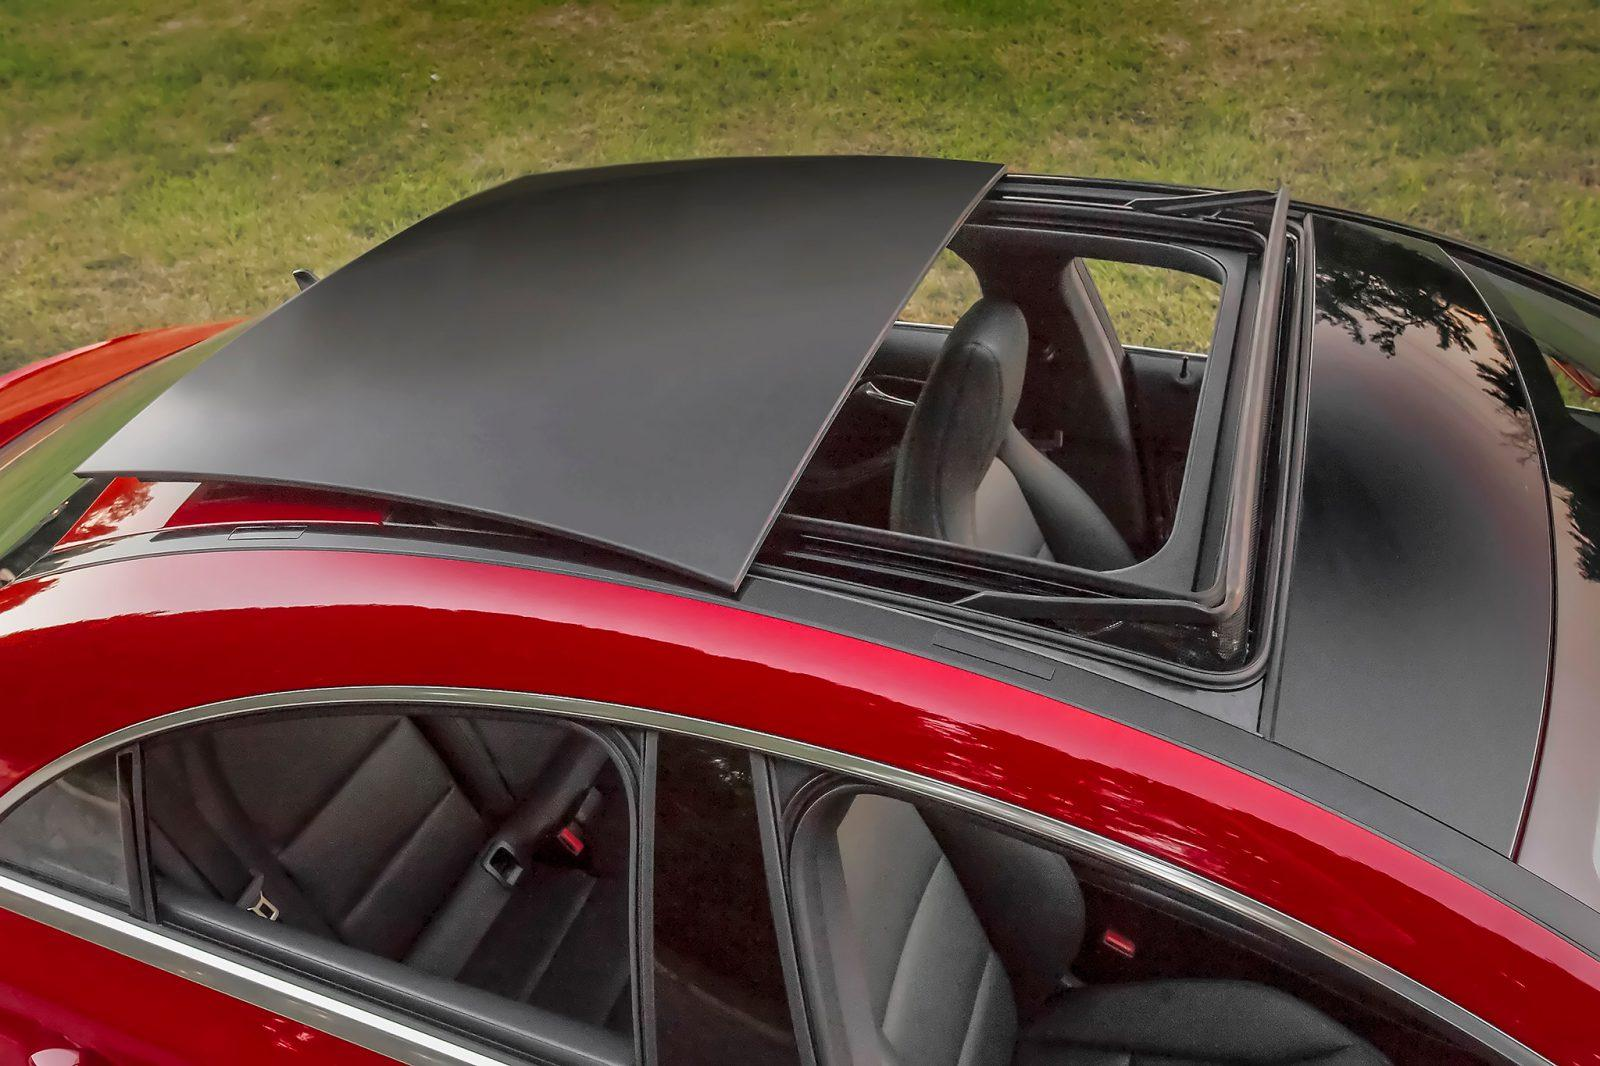 Clarify Doubt About Moonroof Vs Sunroof